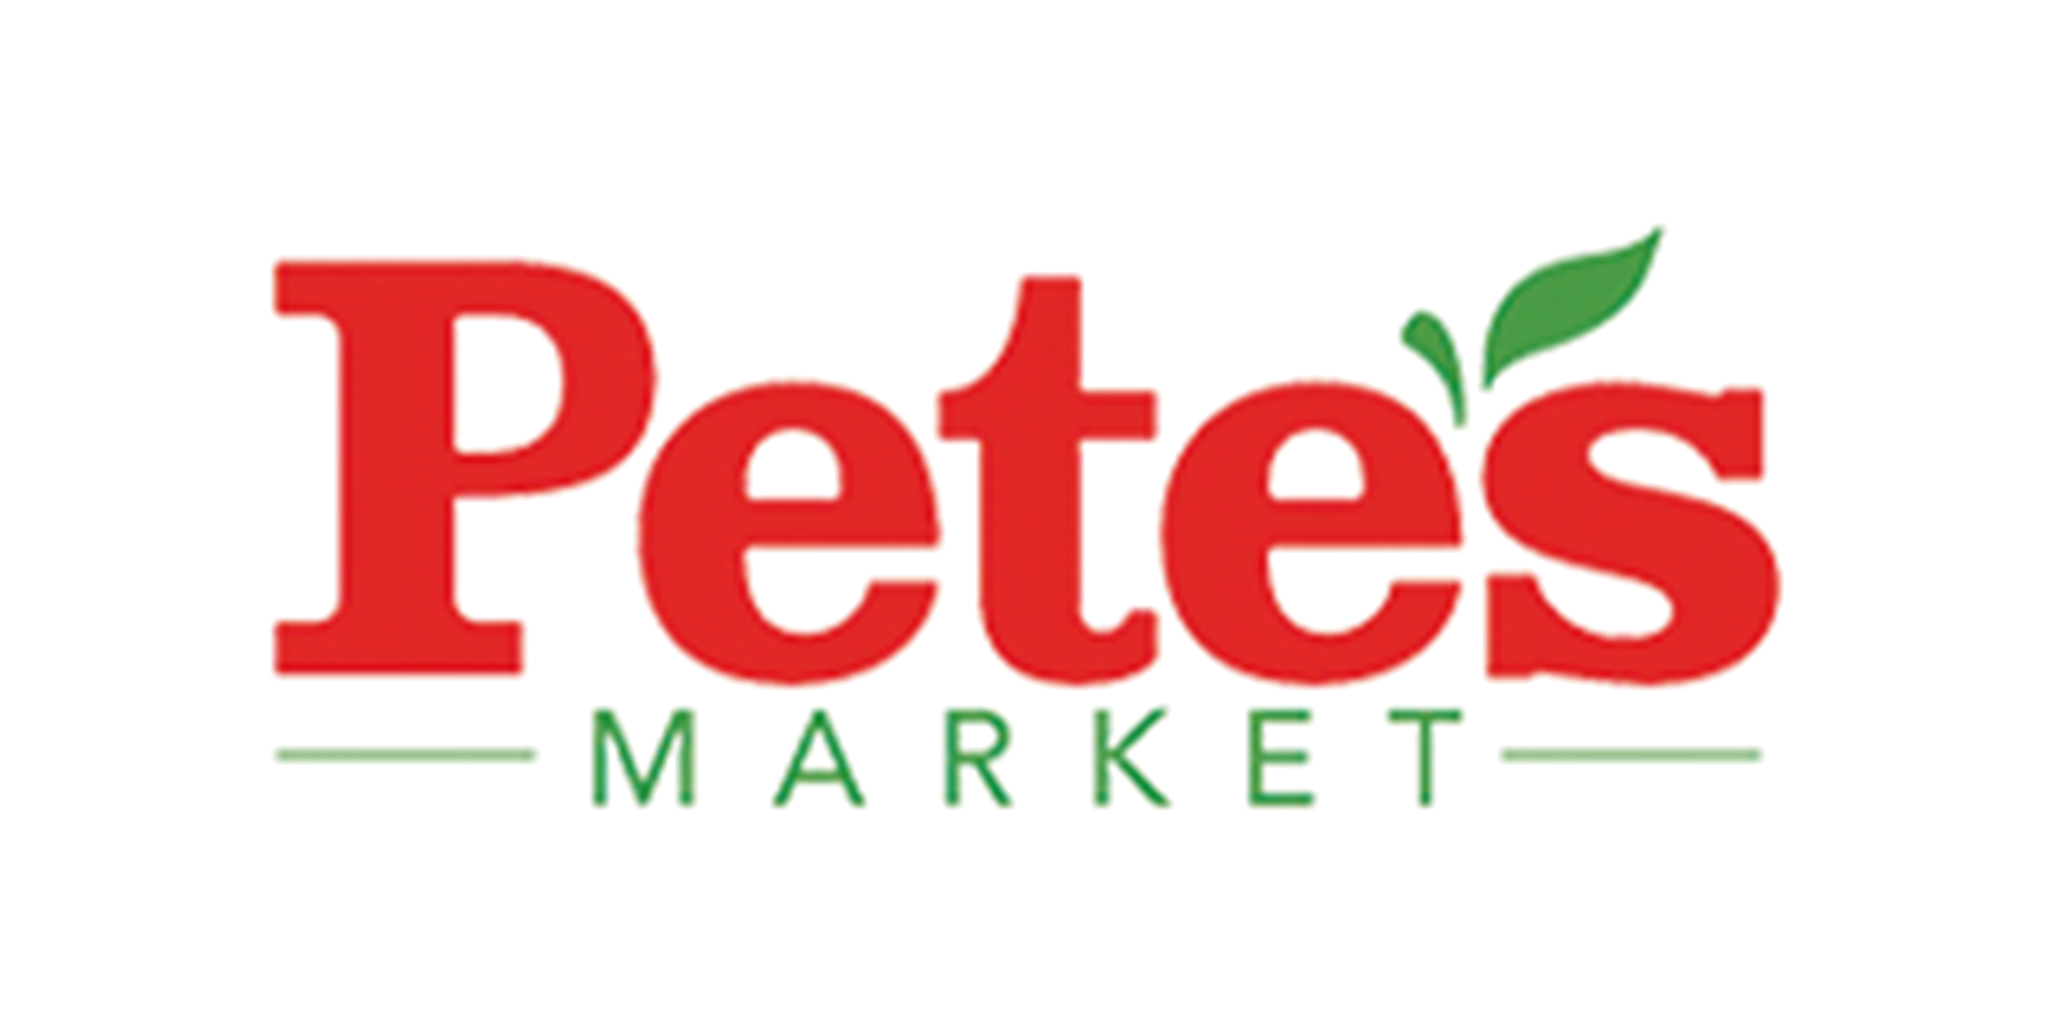 Where to Buy/Ralston-Family-Farms-Grocers-petes-market.png